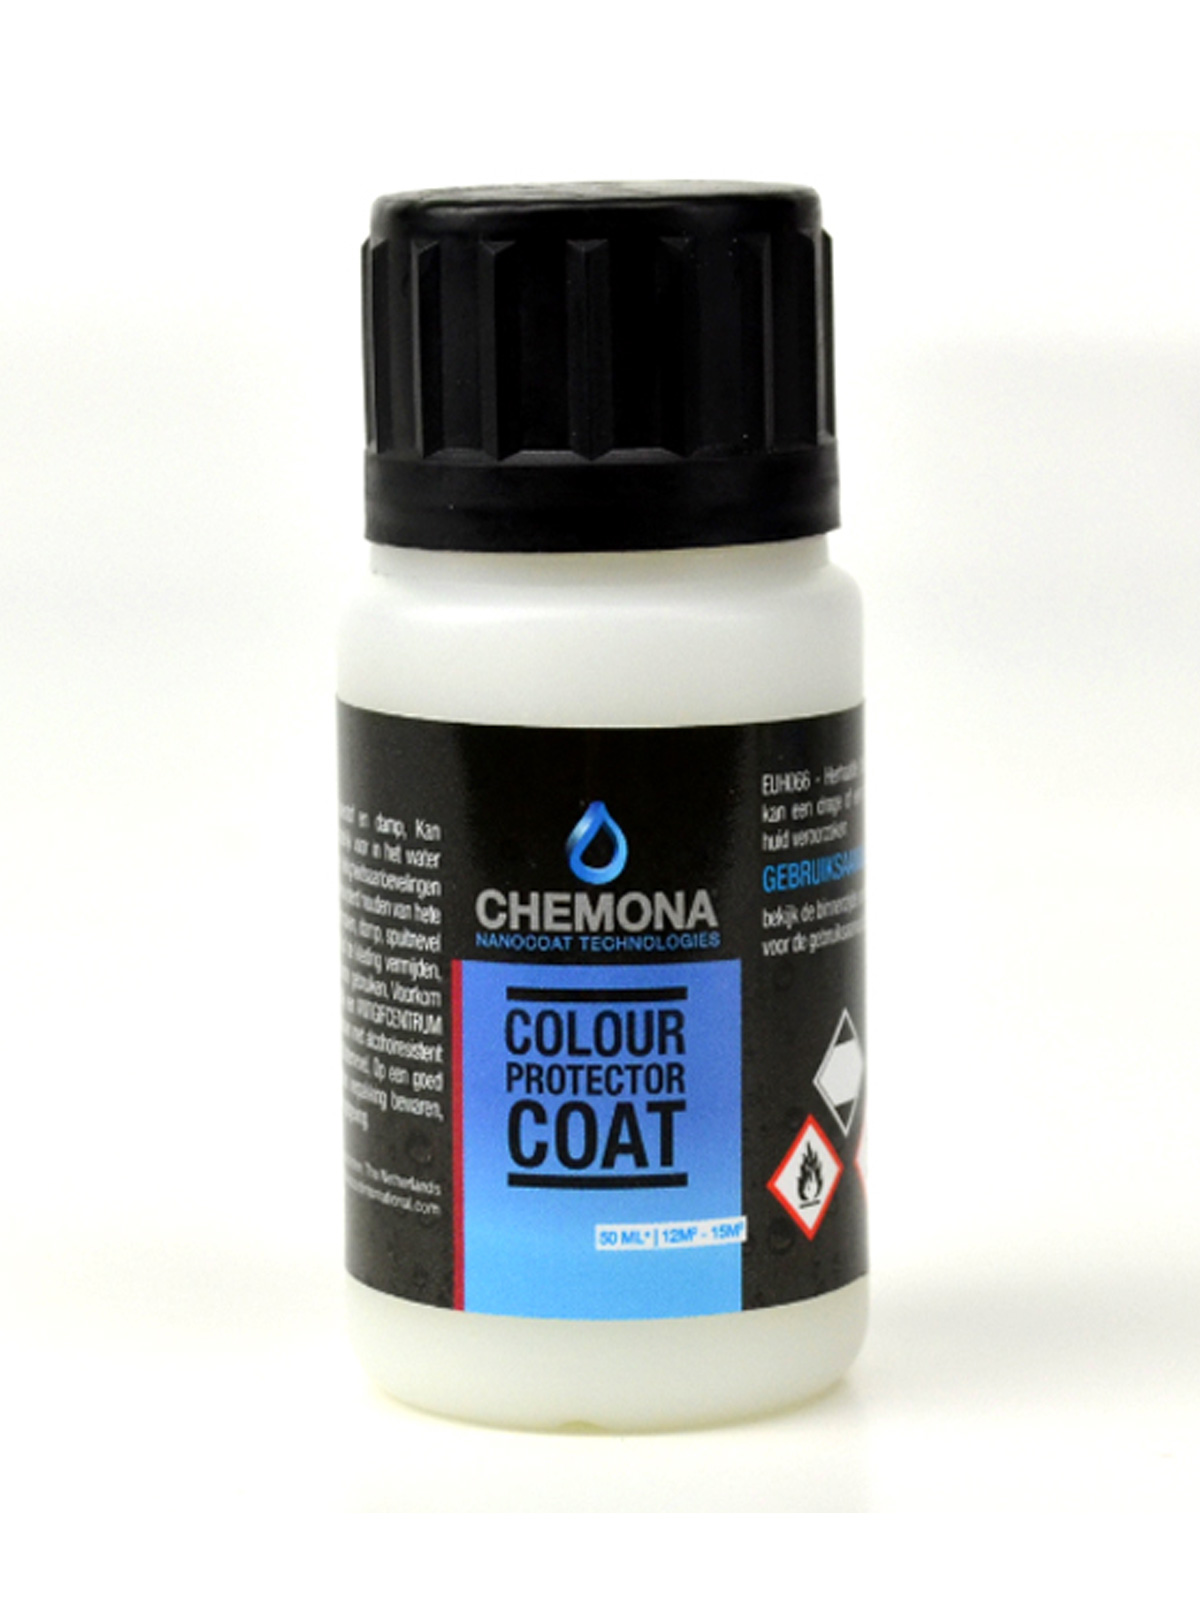 Chemona Colour Protector Coat